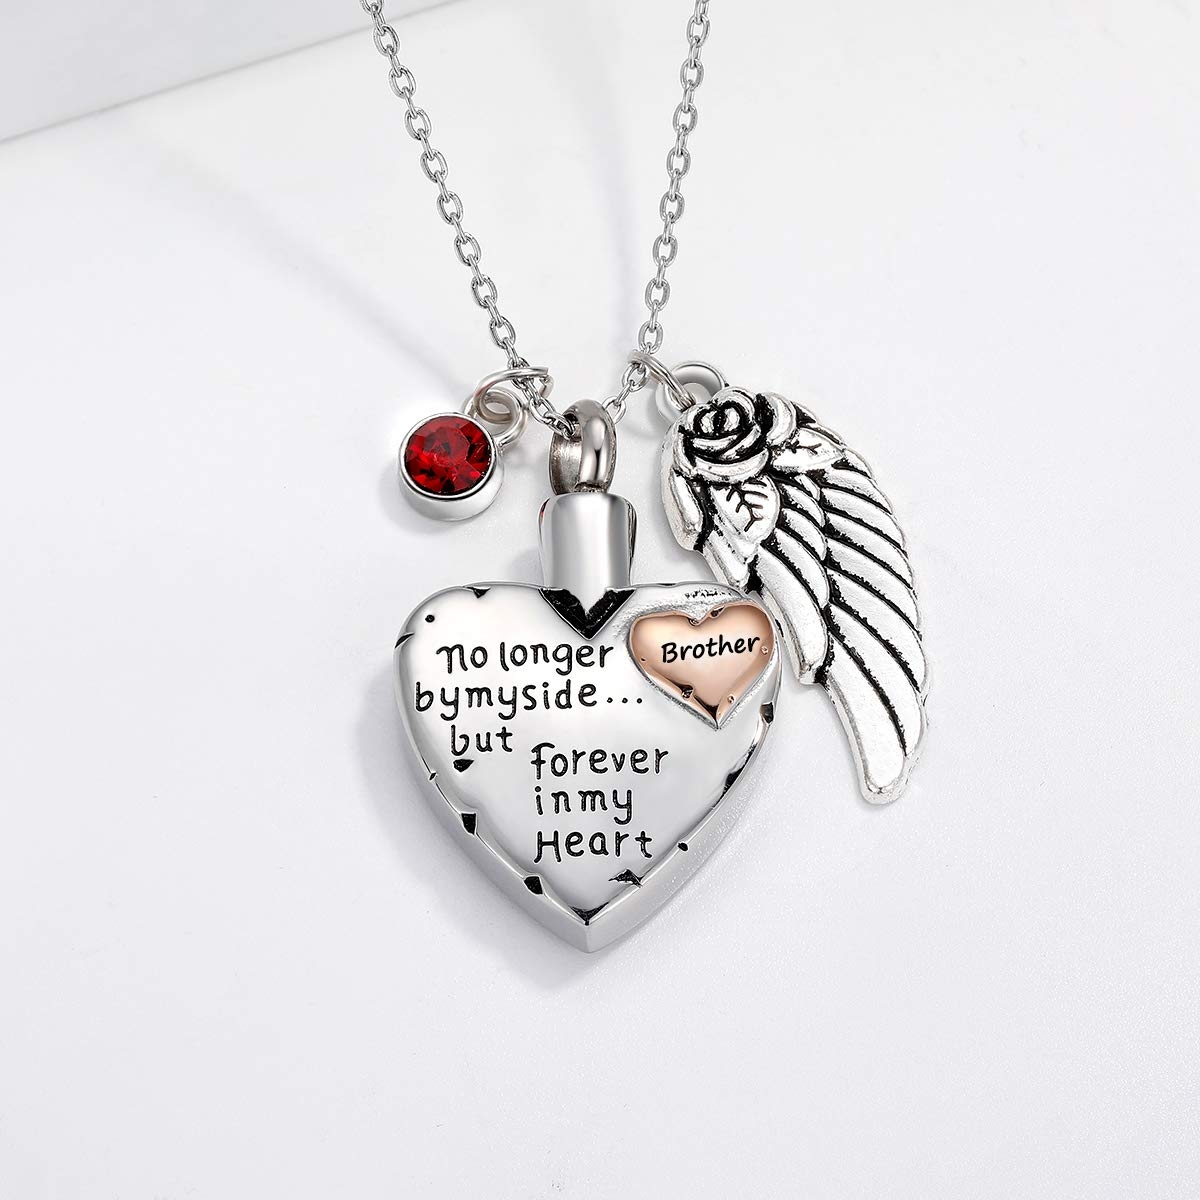 No Longer by My Side Forever in My Heart Cremation Jewelry for Ashes Pendant Birthstone/&Angel Wing Stainless Steel Memorial Necklace for Ashes